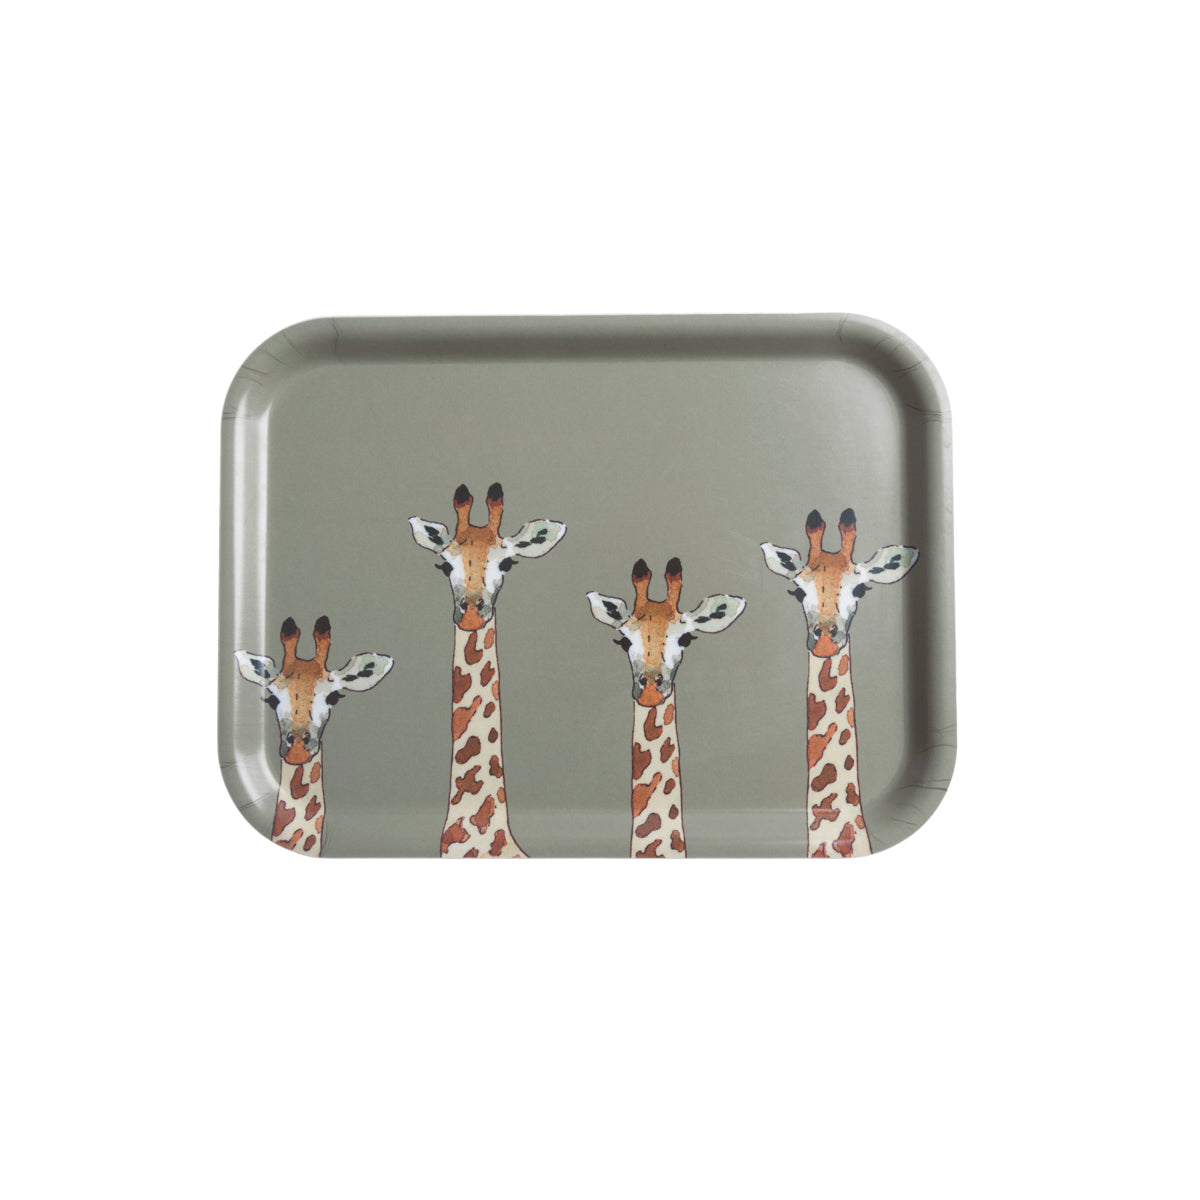 Giraffe Printed Tray Small by Sophie Allport